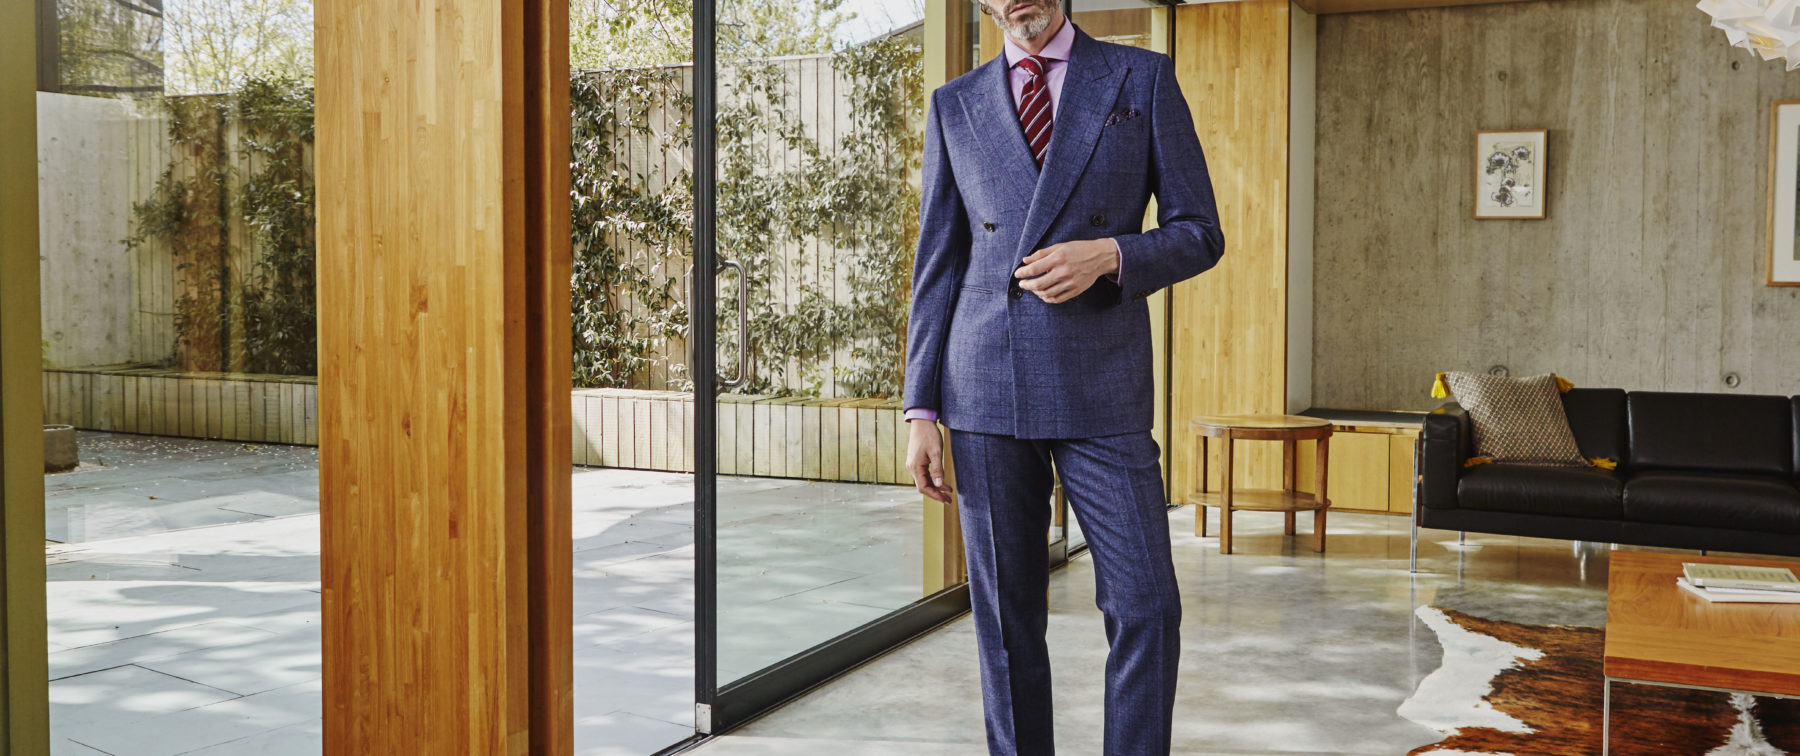 How to match your shoes with your suit | Gentleman's Journal